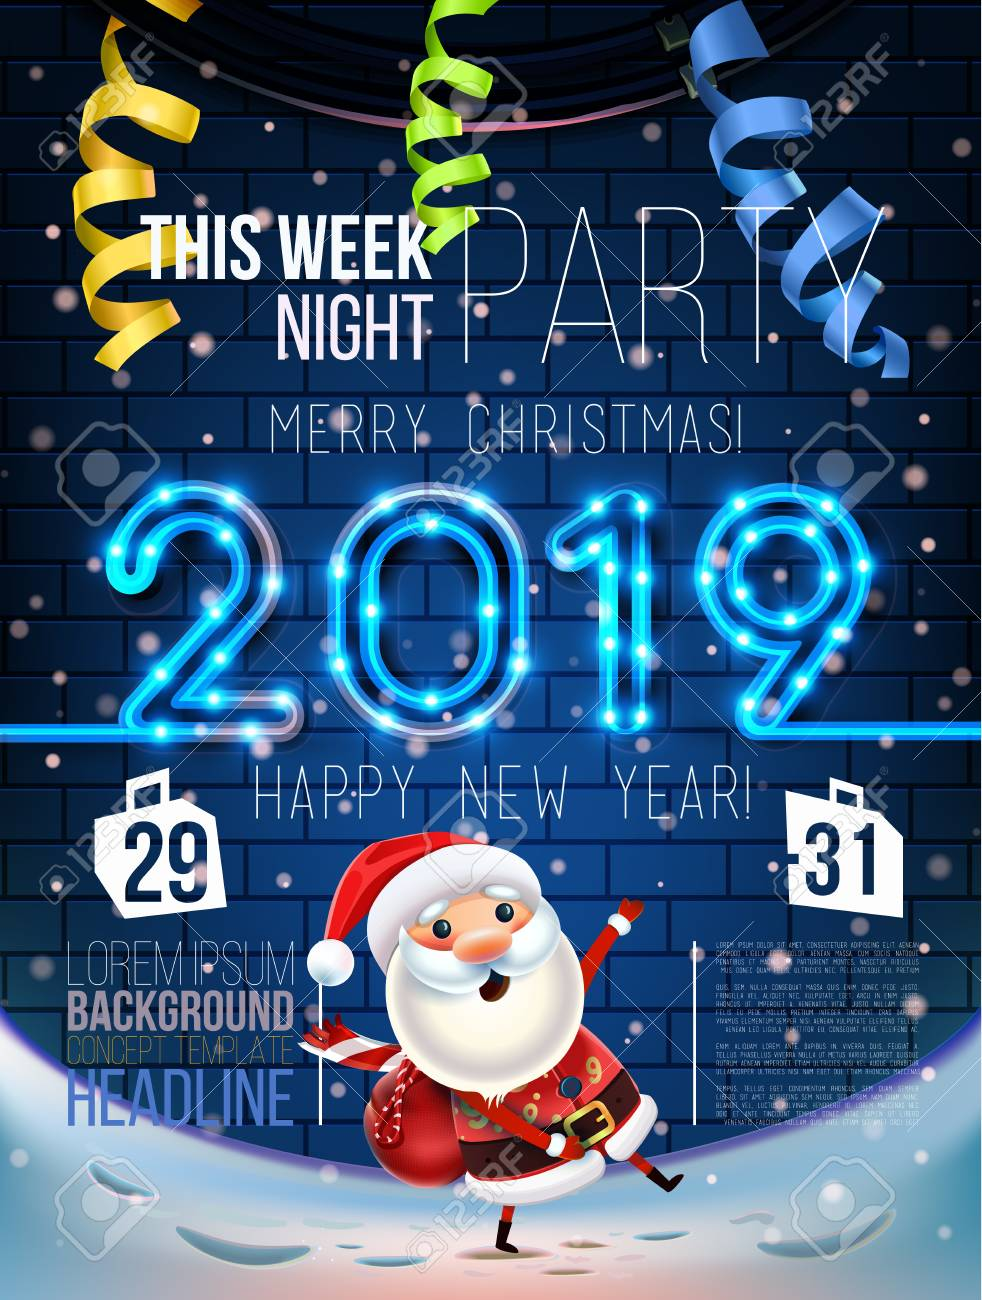 Leo 2019 Mes A Mes 2019 Merry Christmas And New Year Symbol Santa Claus On A Winter